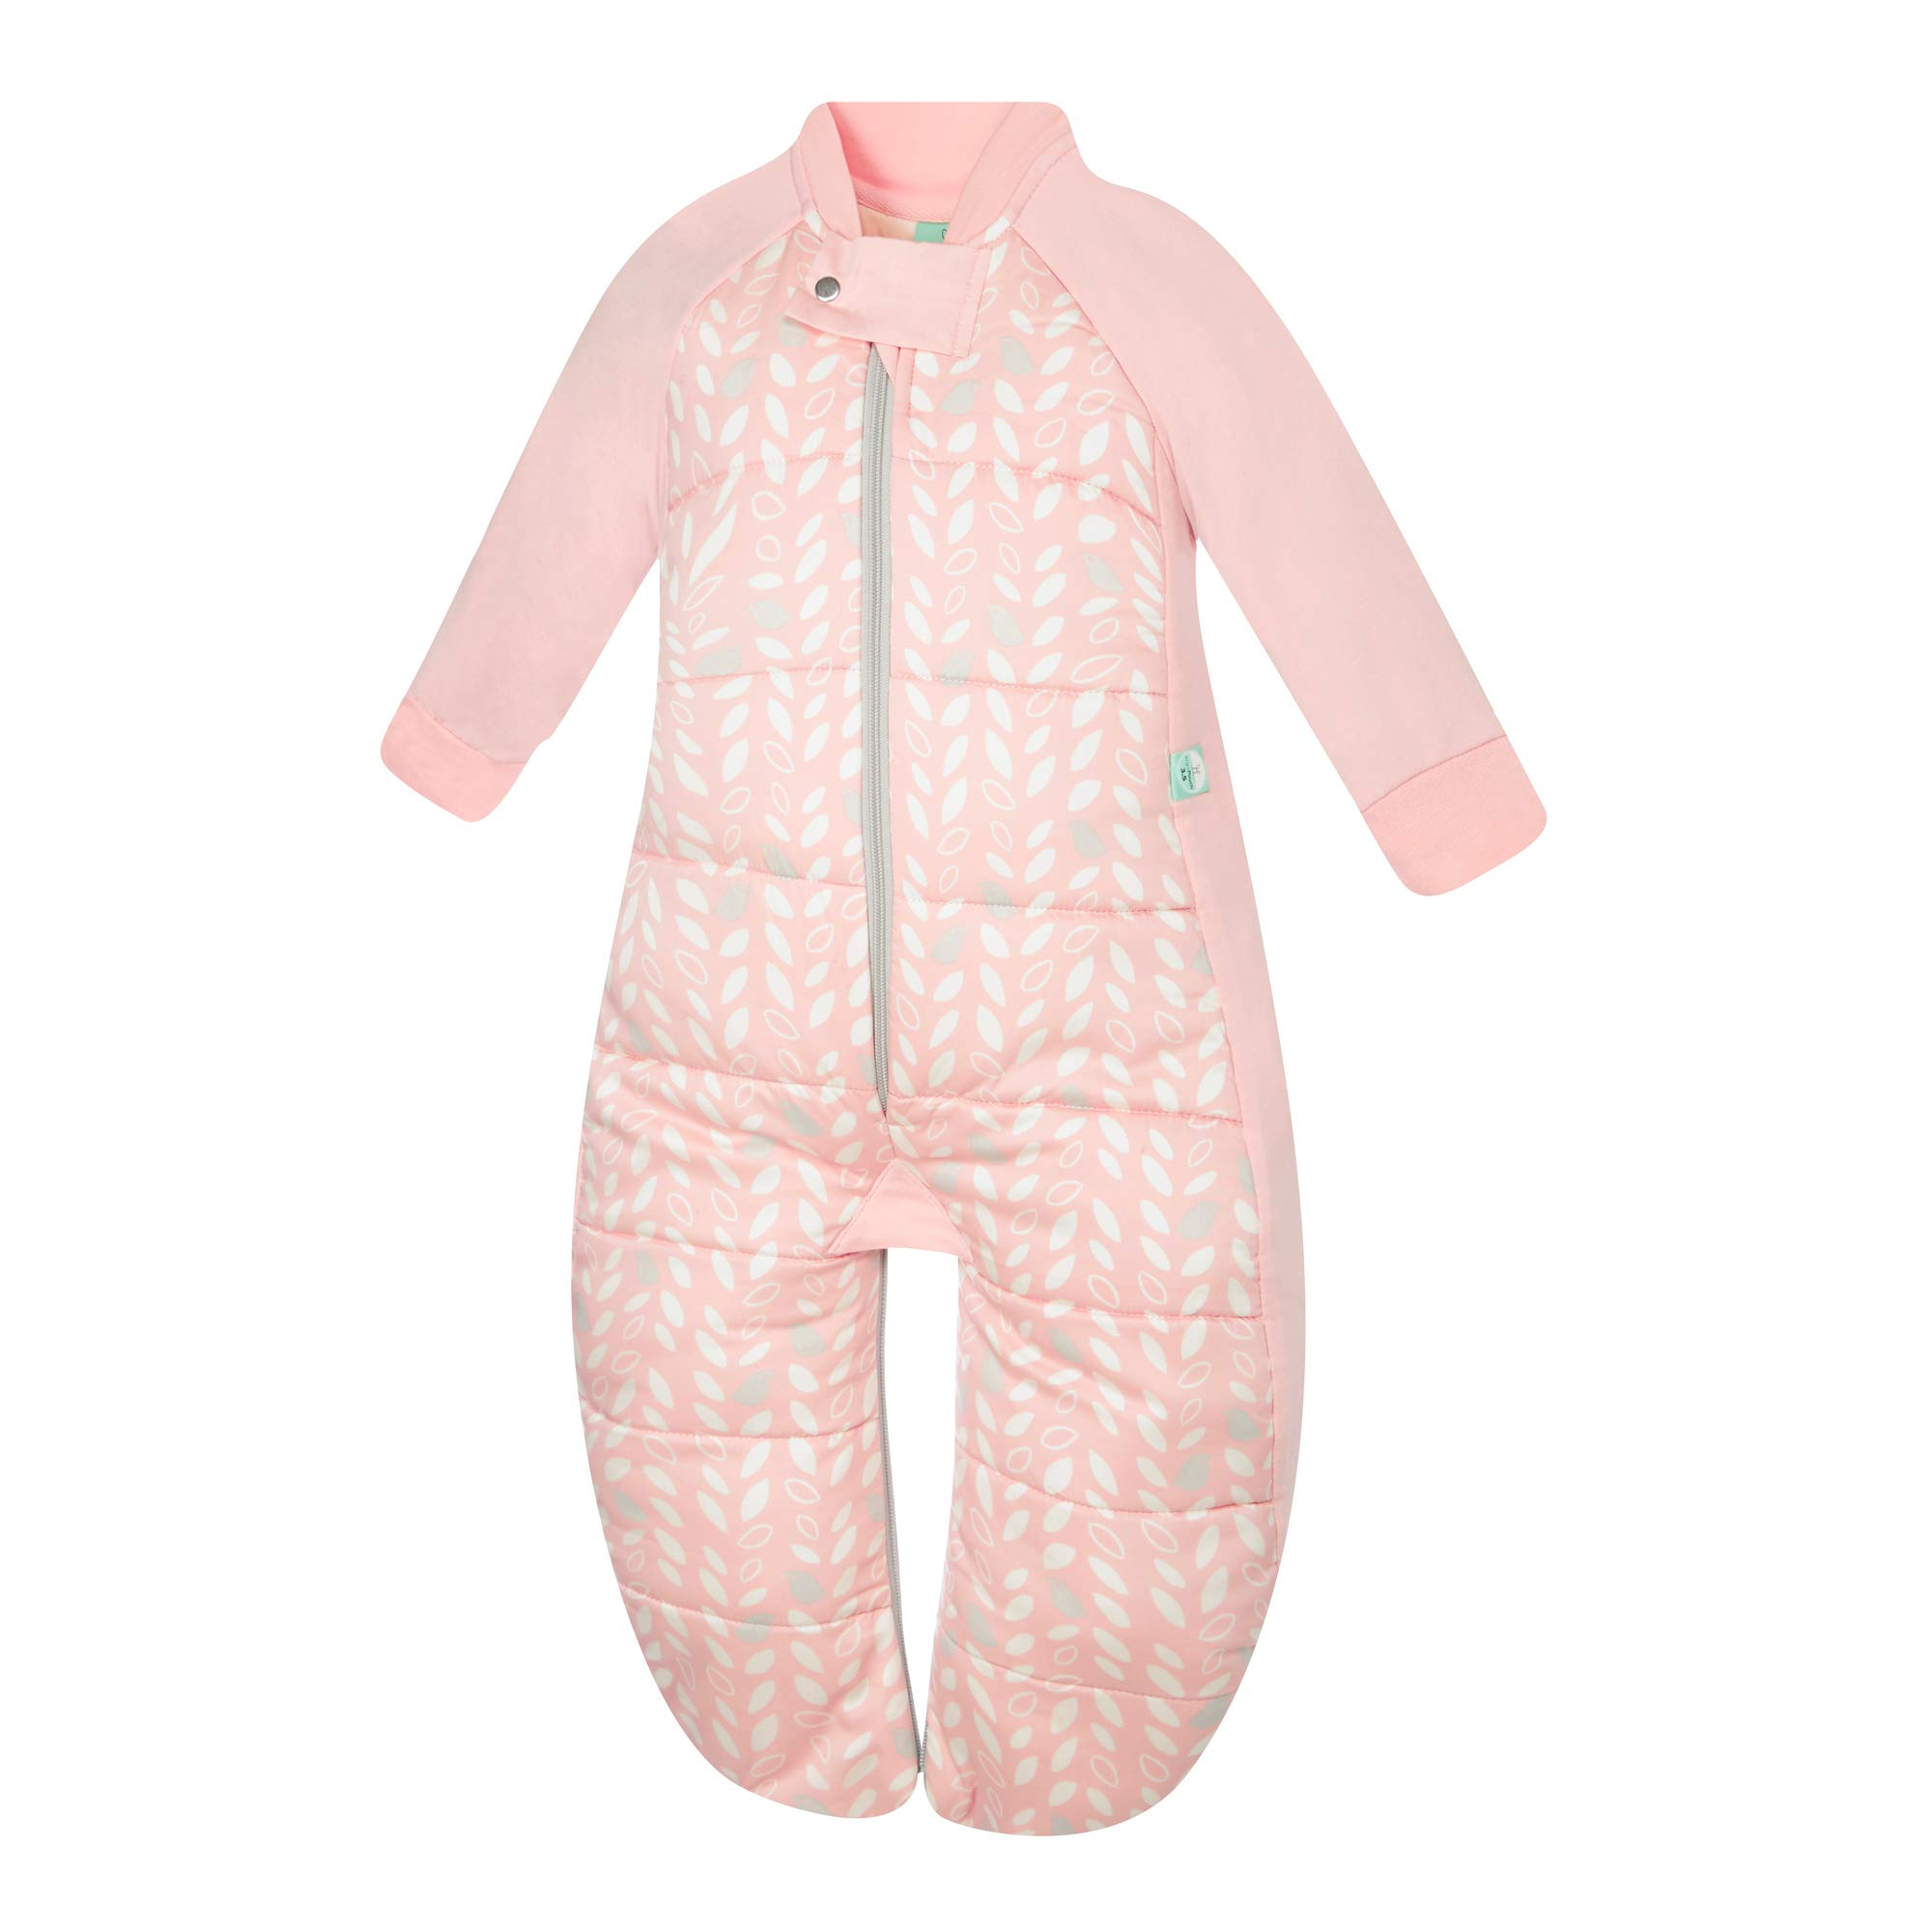 ergoPouch 3.5 TOG Sleep Suit Bag 100% organic cotton filling with cotton sleeves and fold over mitts. 2 in 1 wearable blanket sleeping bag converts to sleep suit with legs (Spring Leaves, 2-12 months) by Ergo Pouch